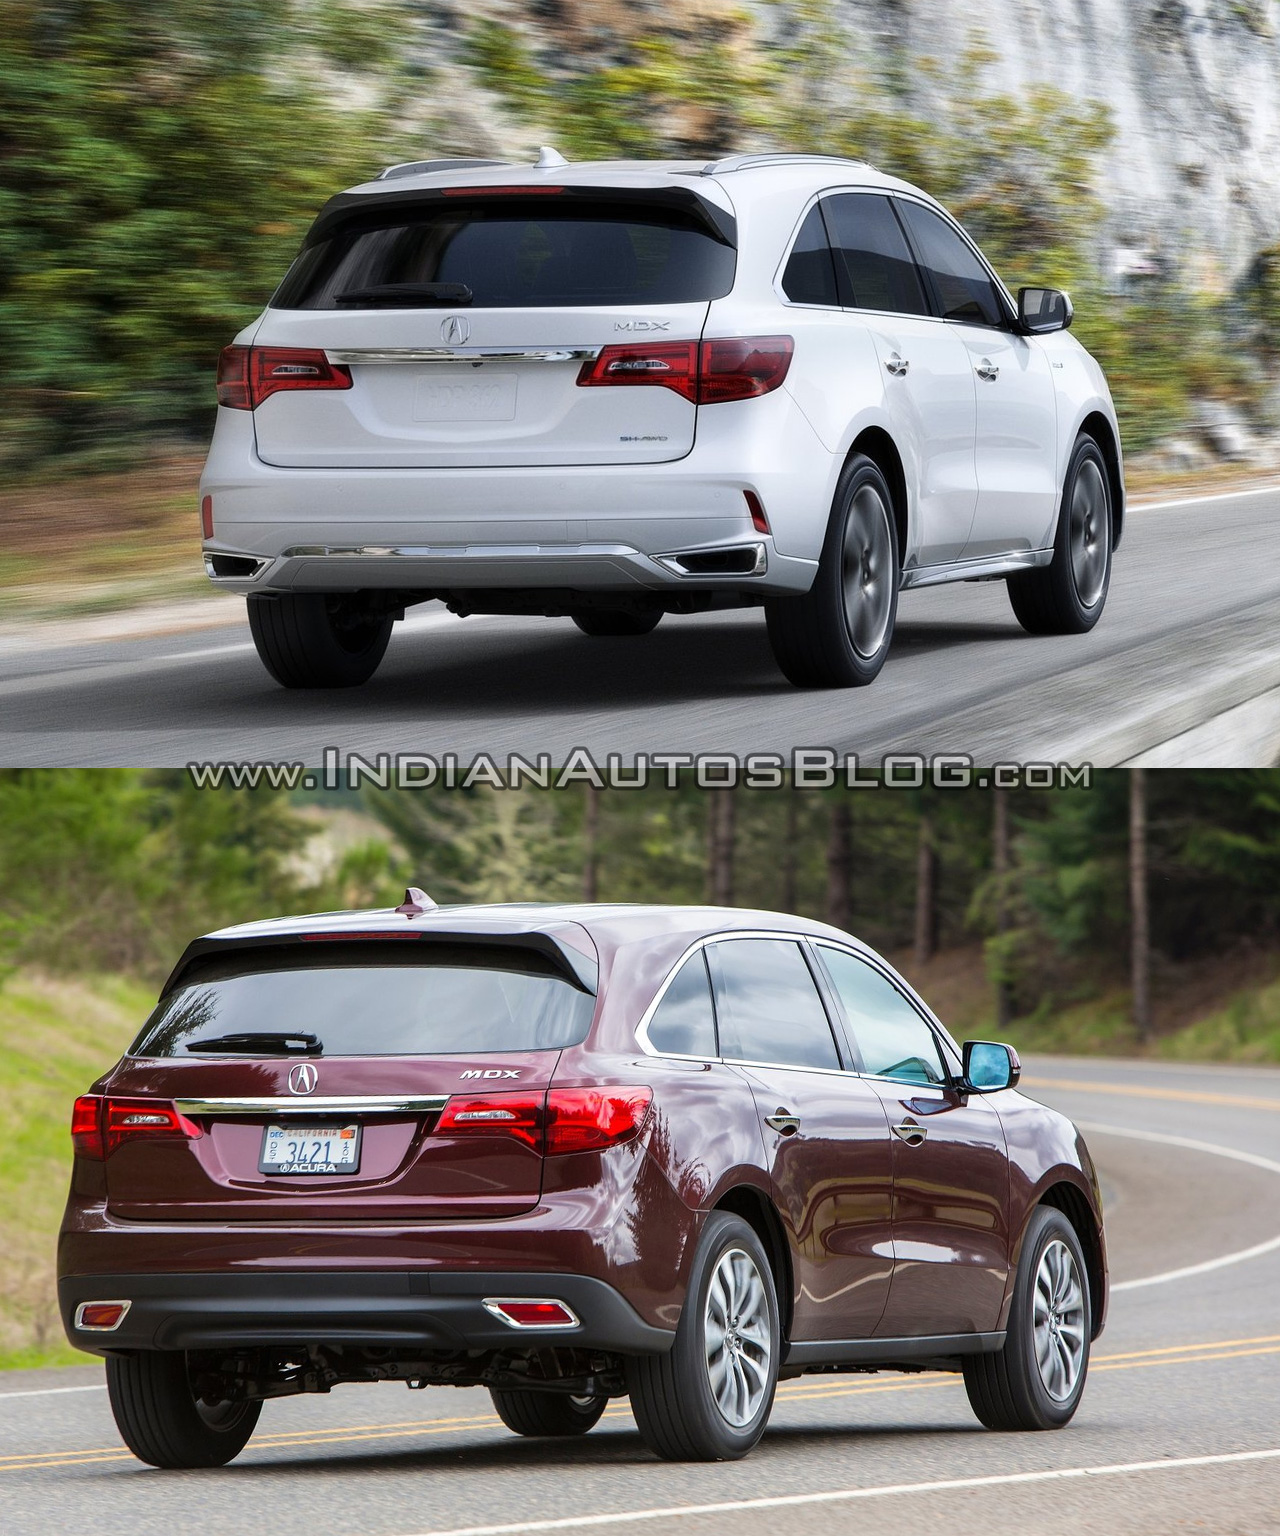 2017 Acura MDX Vs. Old Acura MDX Rear Three Quarters